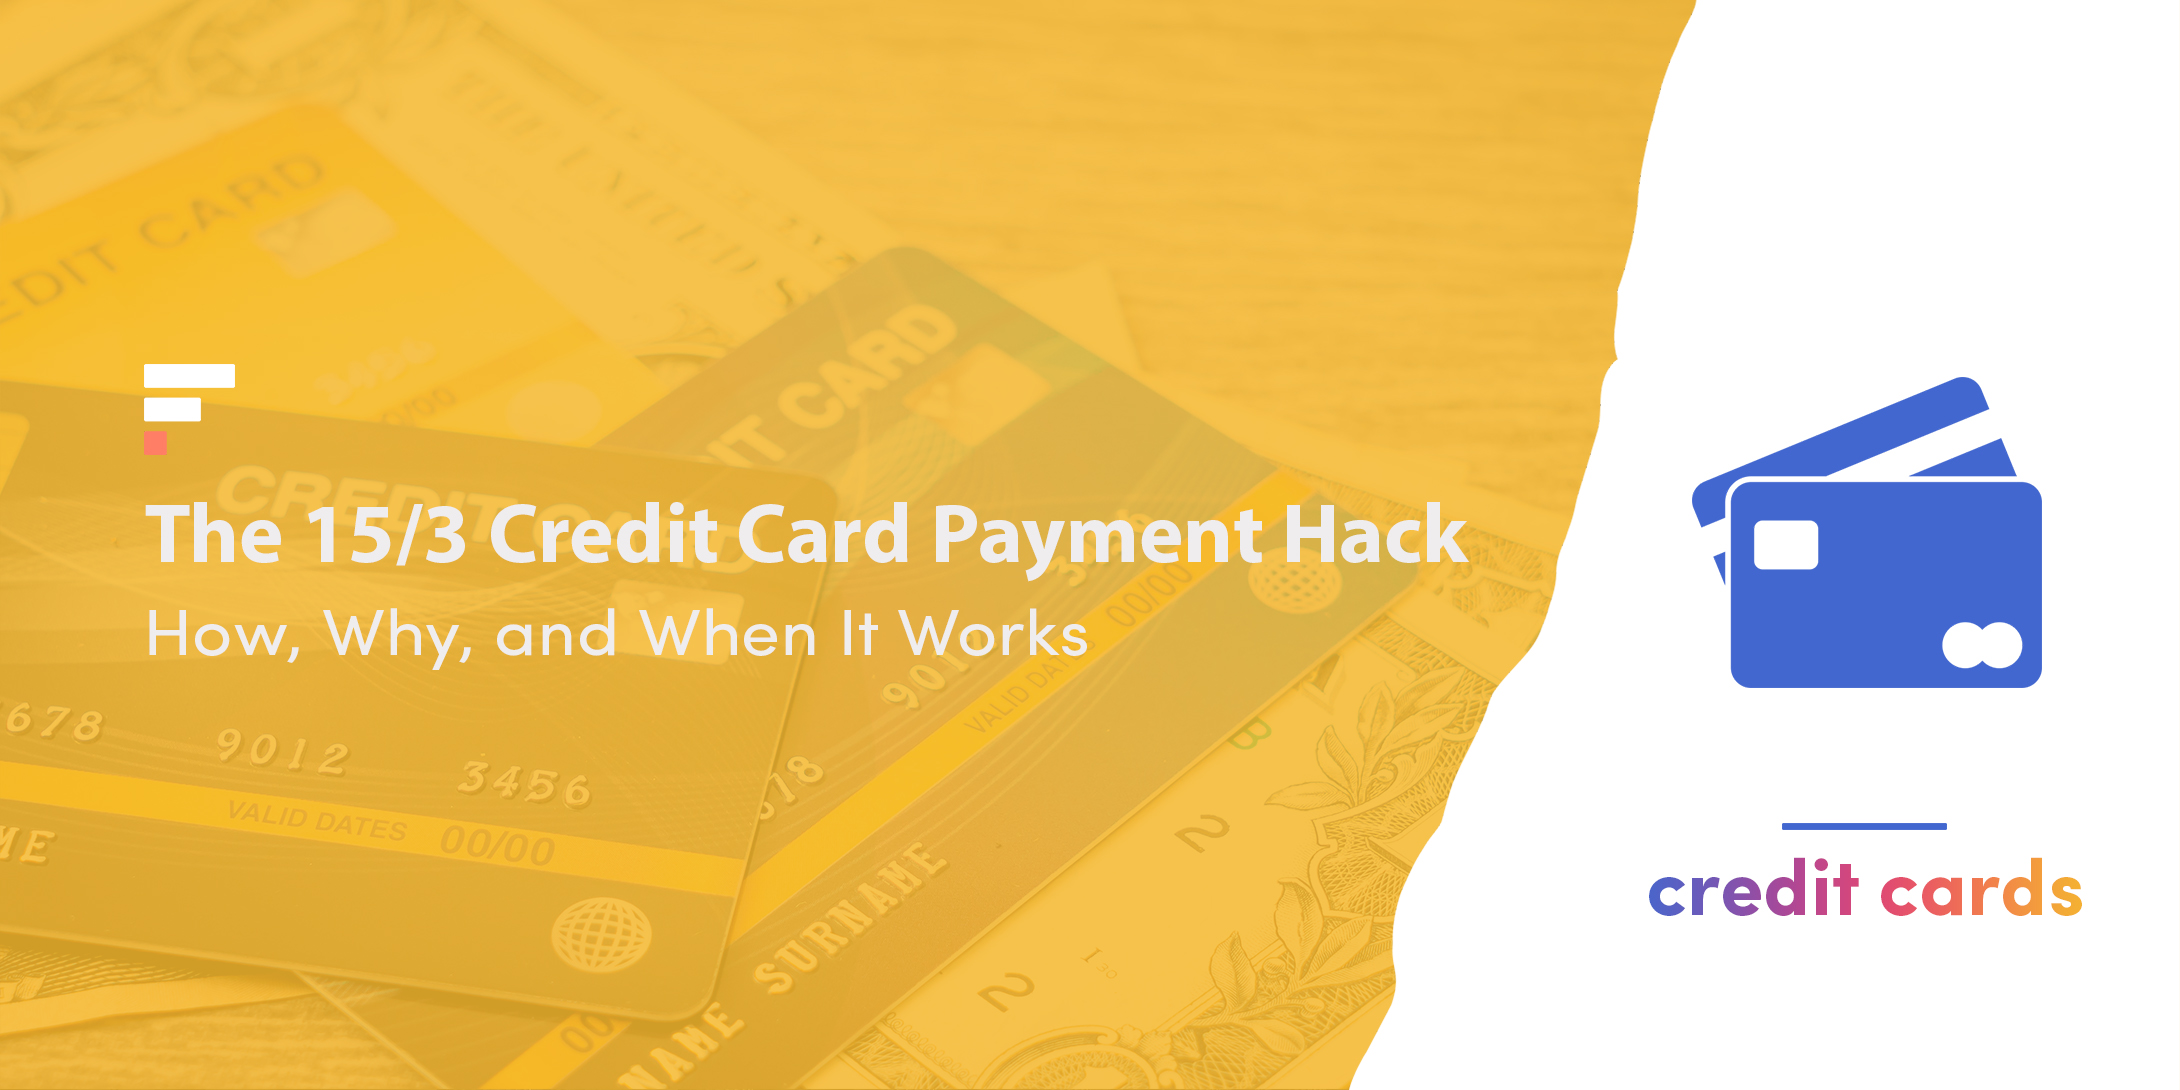 The 15/3 credit card payment hack